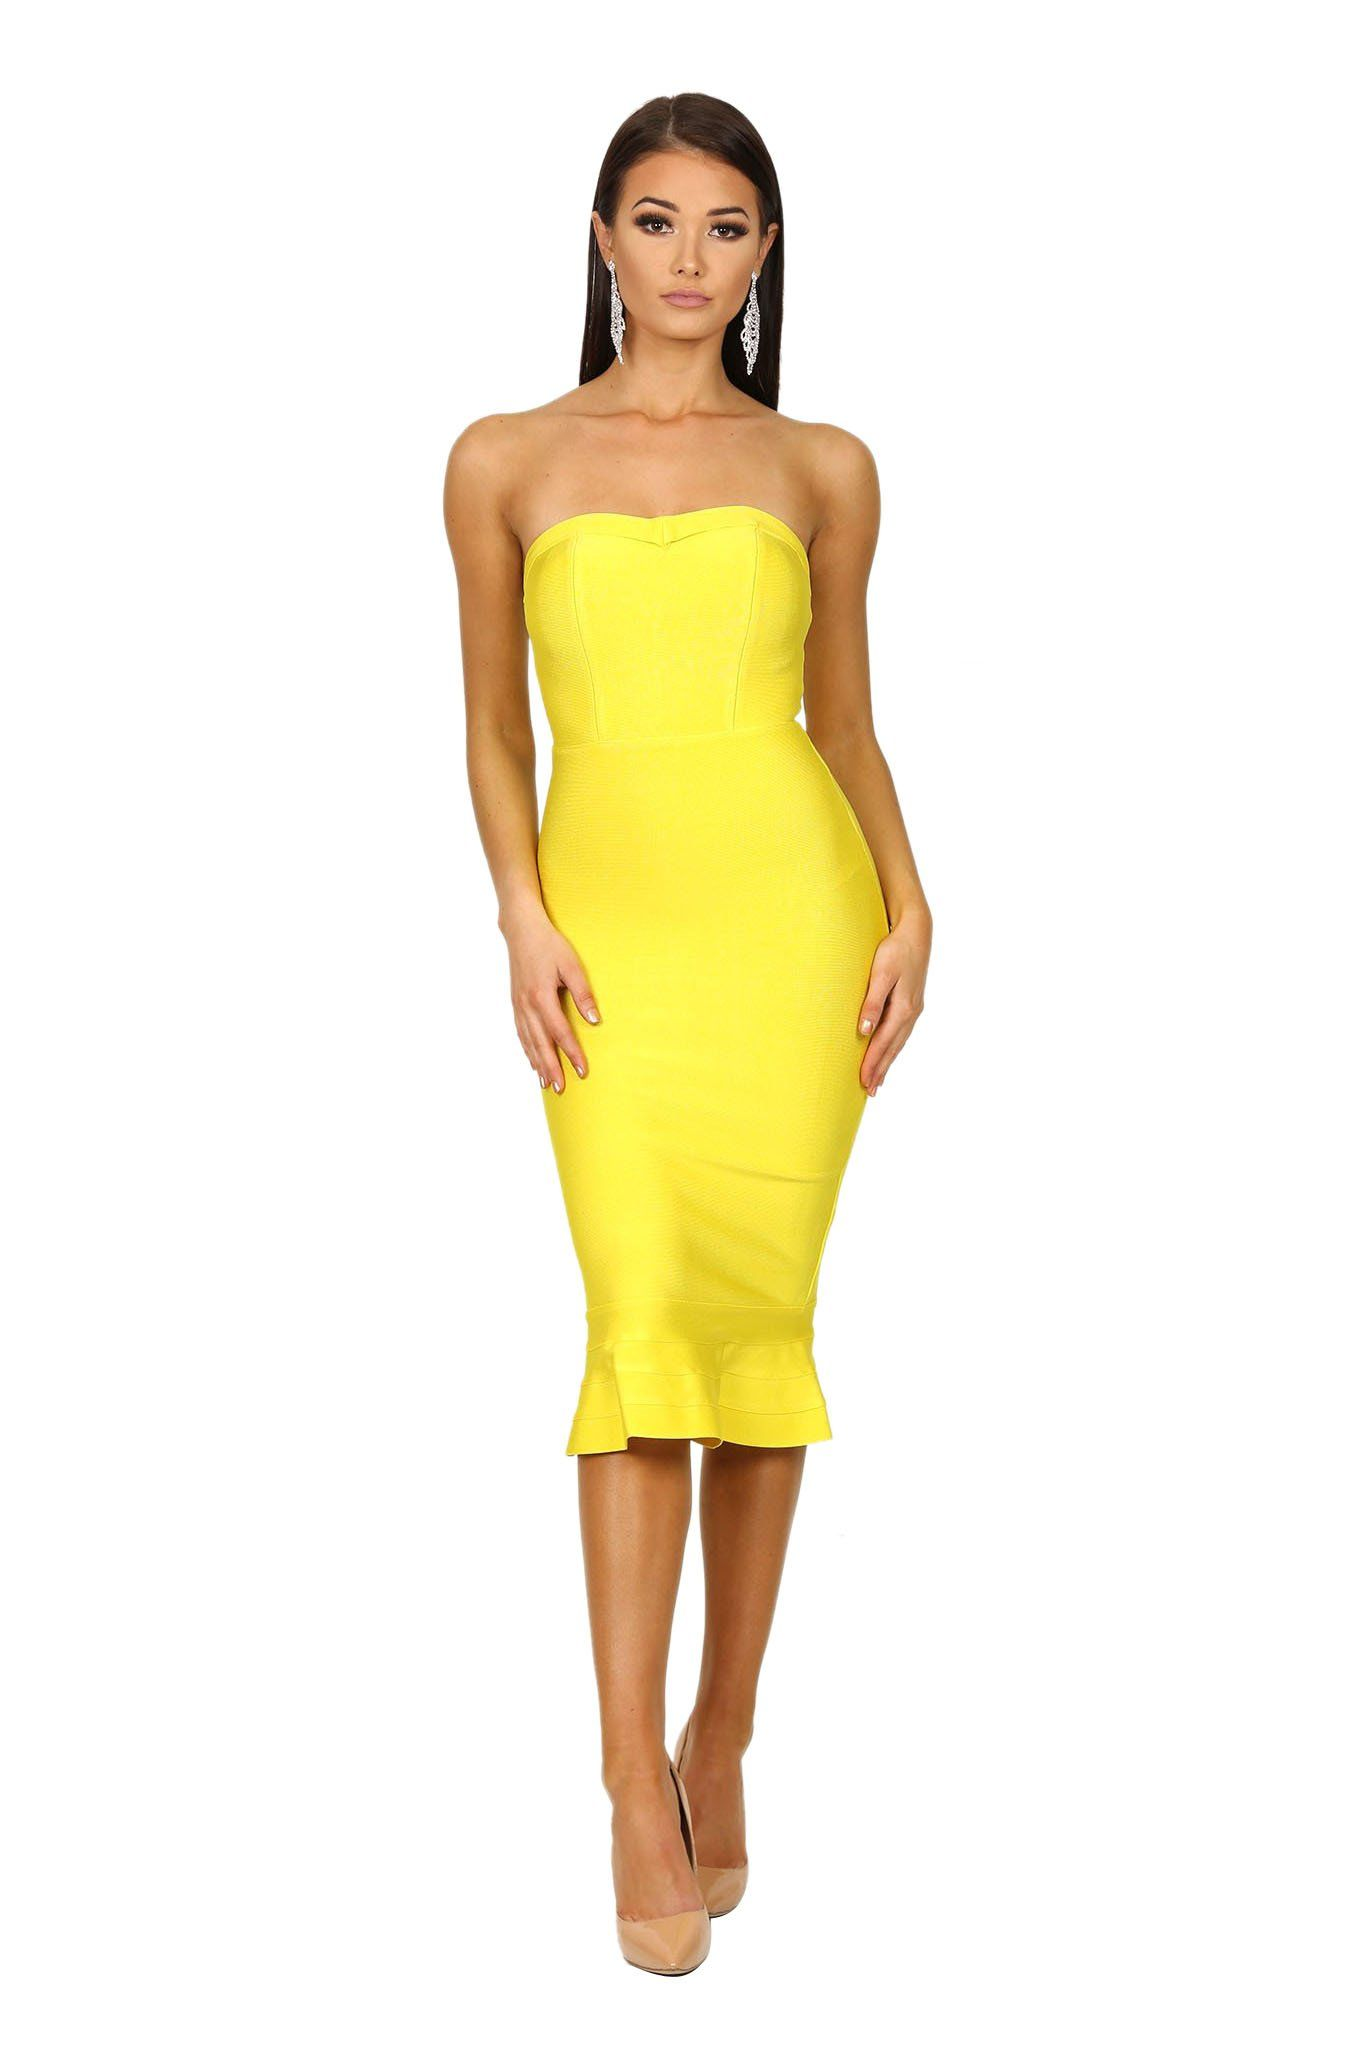 Strapless midi bodycon bandage dress with fluted peplum hem design in bright yellow color